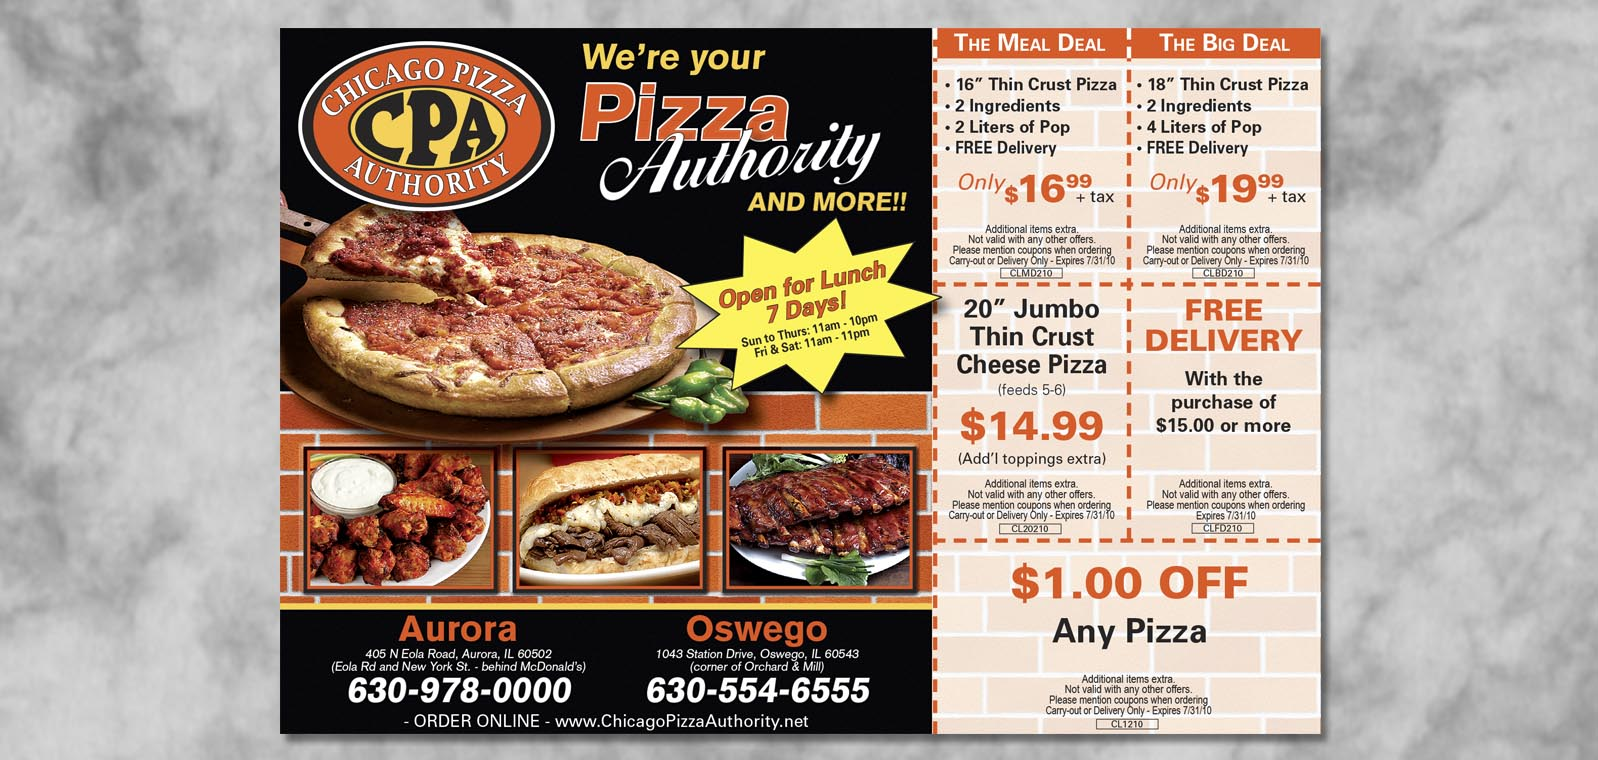 Publication Ad Graphic Design for the Chicago Pizza Authority, by Roselle Graphic Designer Controlled Color, Inc.